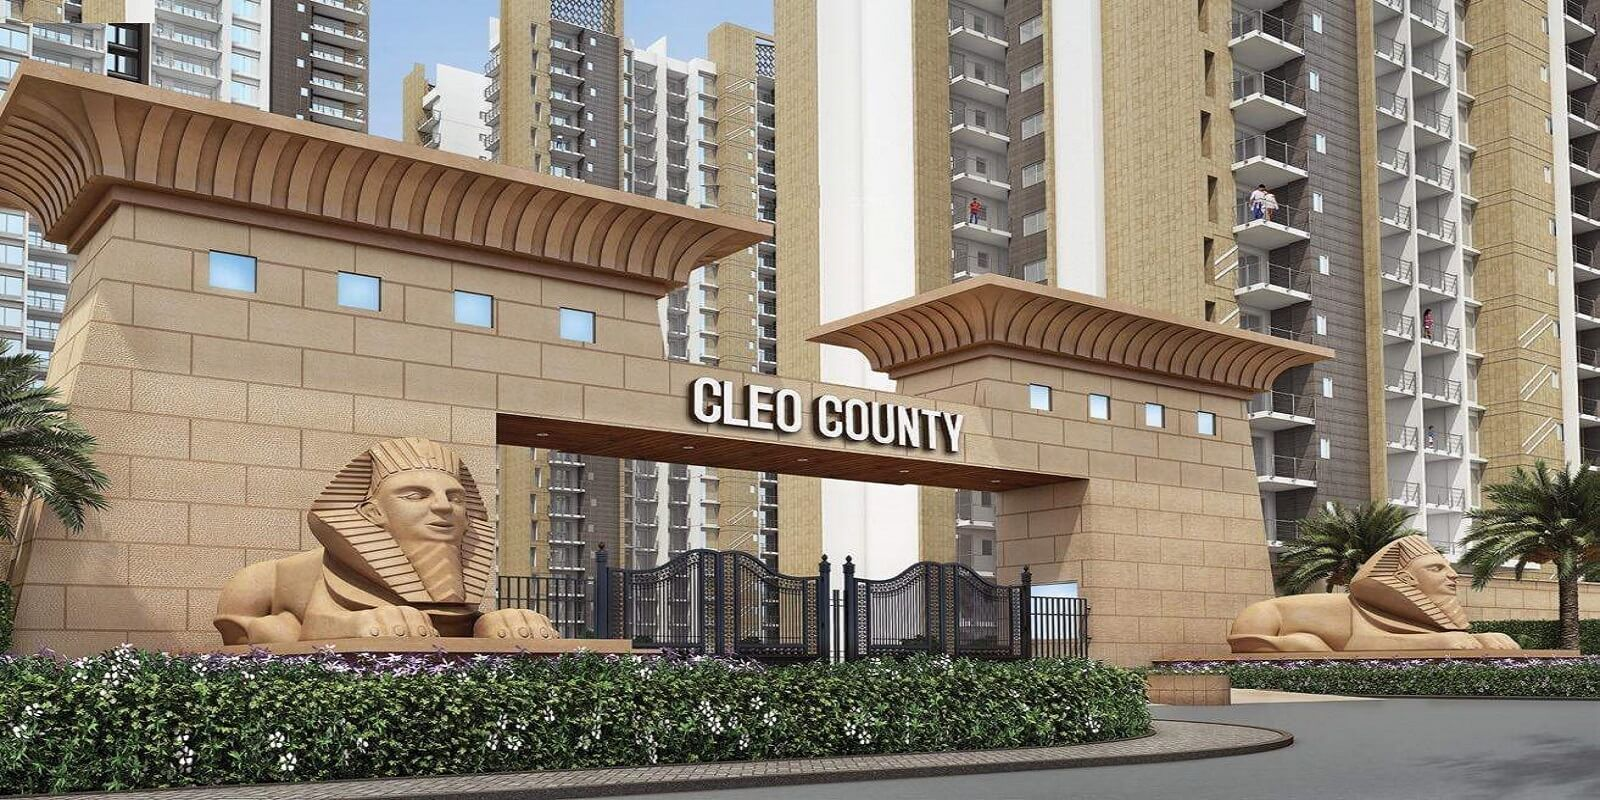 aba cleo county project large image1